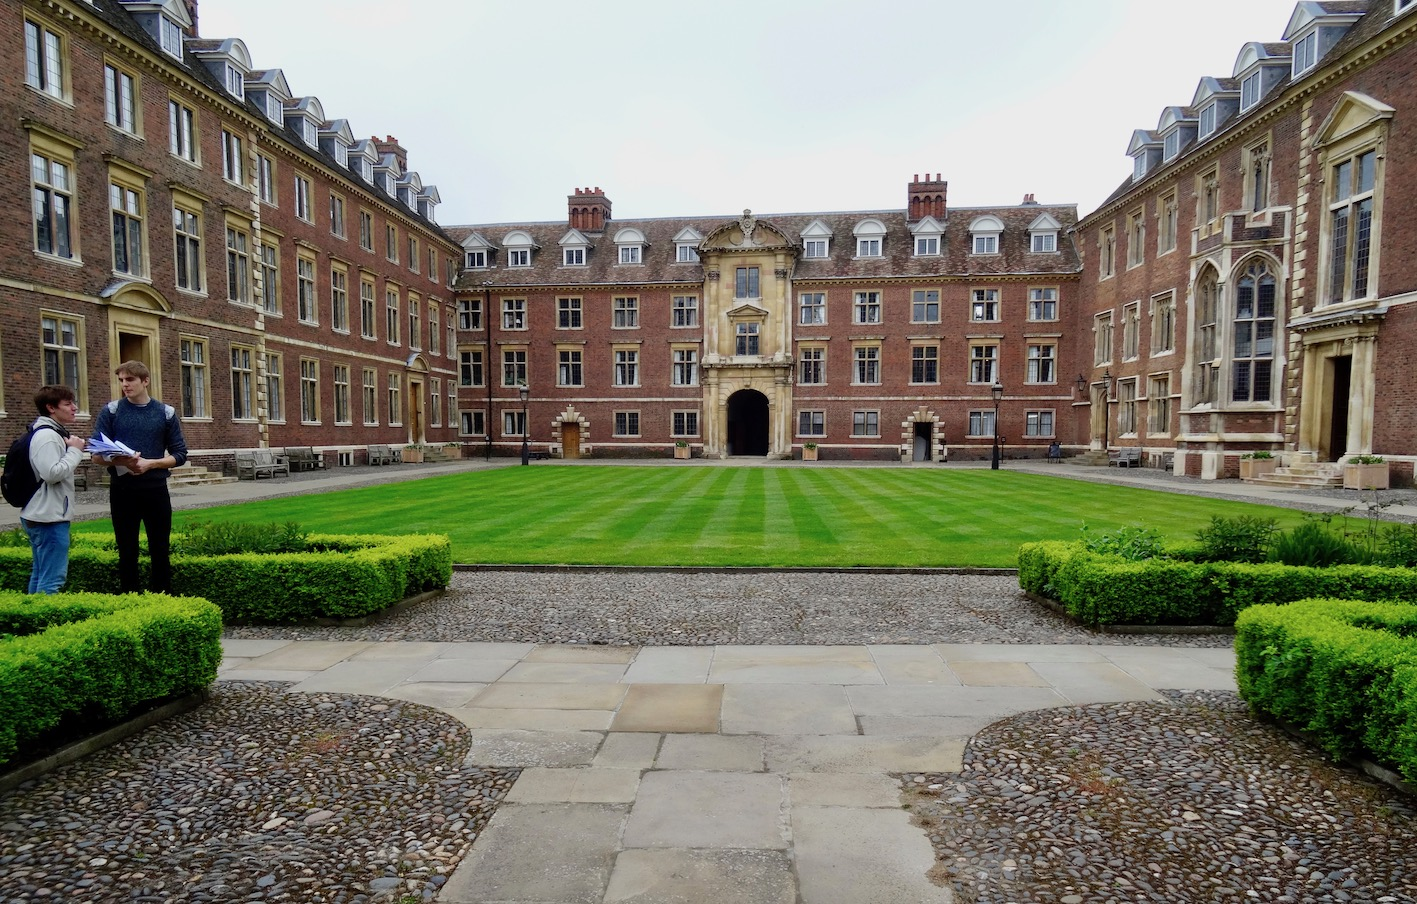 St. Catharine's College Cambridge England.